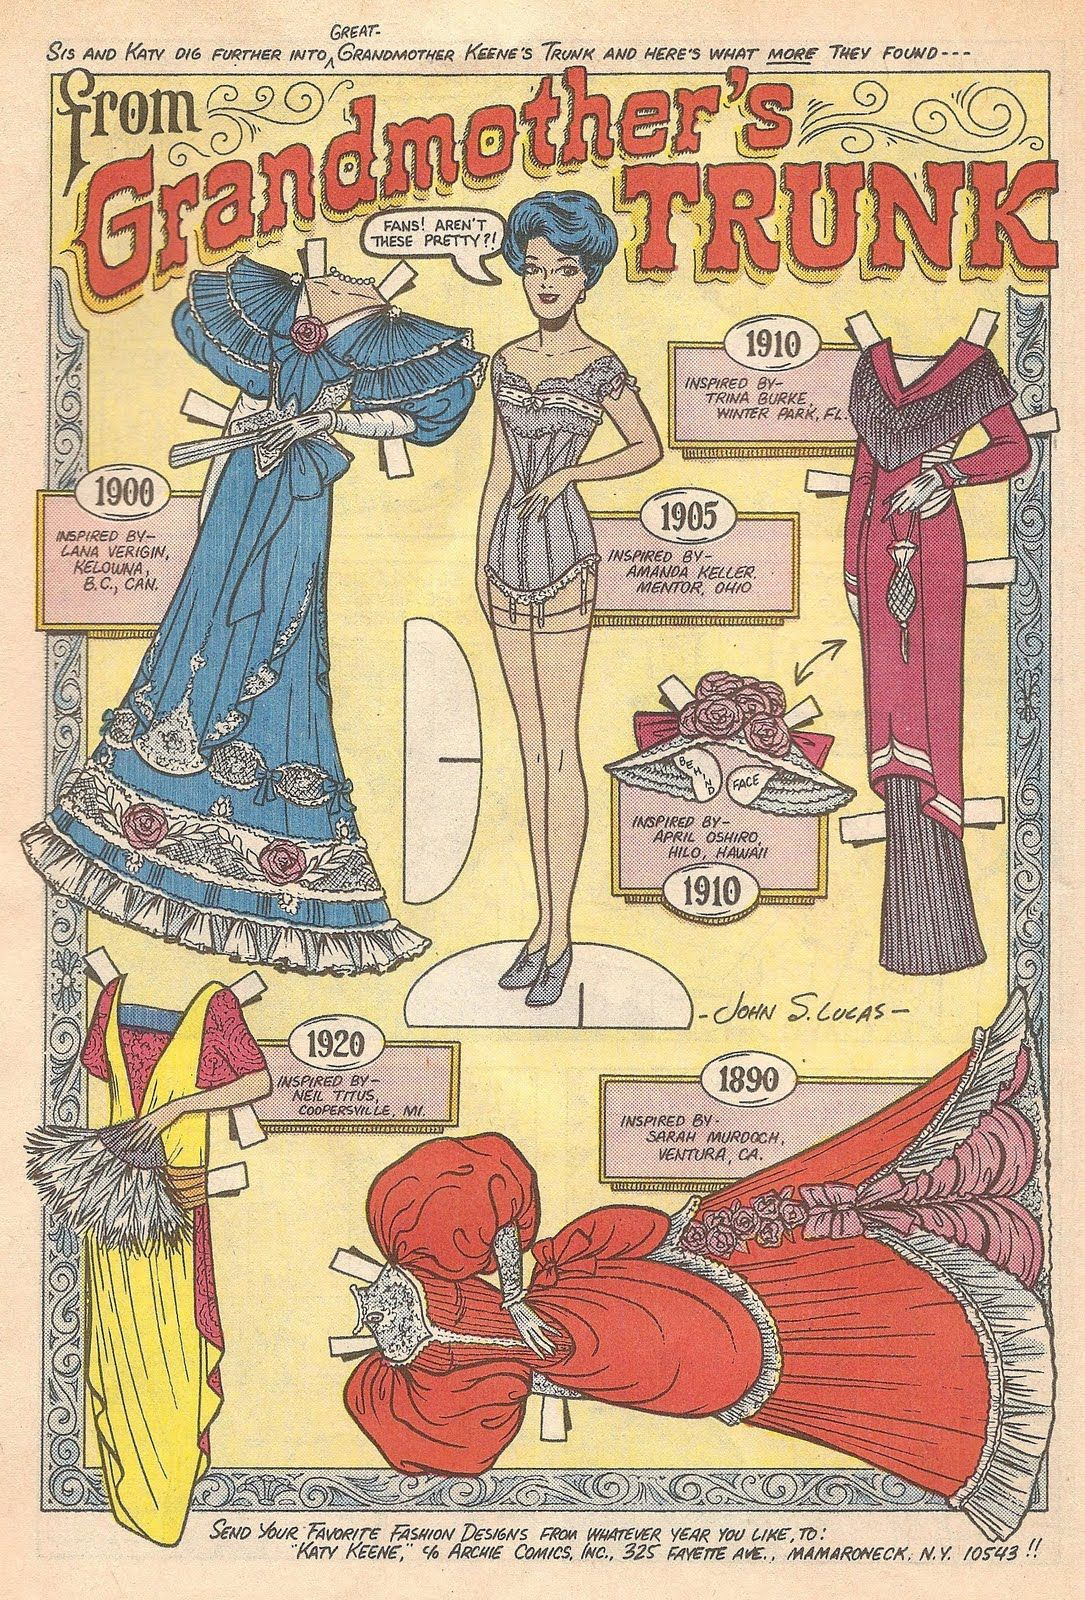 Pin by becky boothe on paper dolls and stamps pinterest dolls